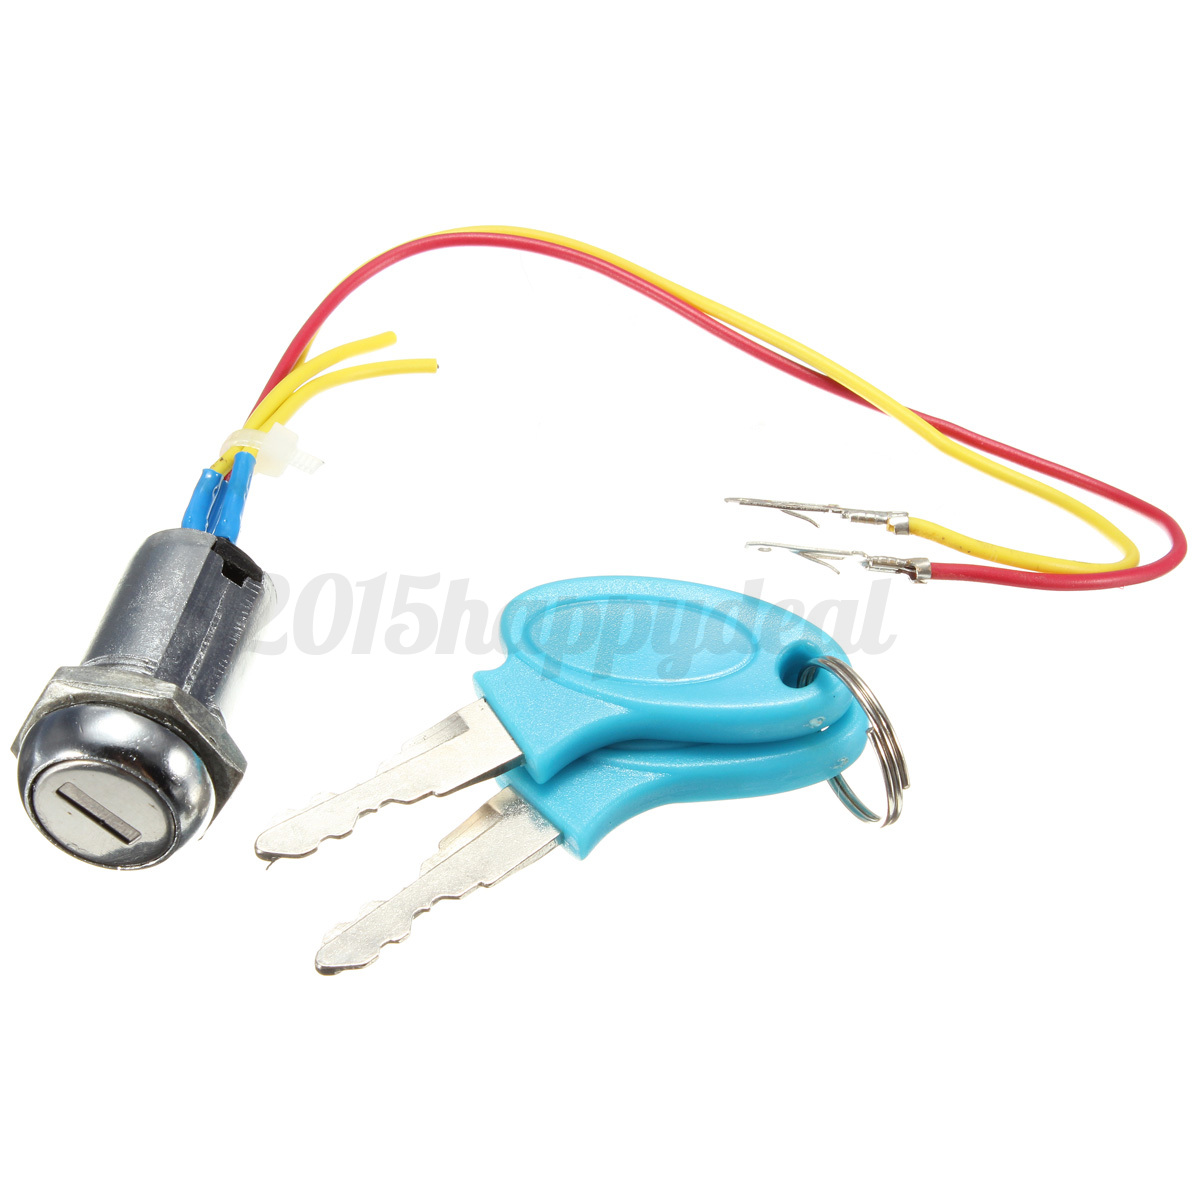 Blue Ignition Switch Lock Electric Mobility Scooter Bike Part ...